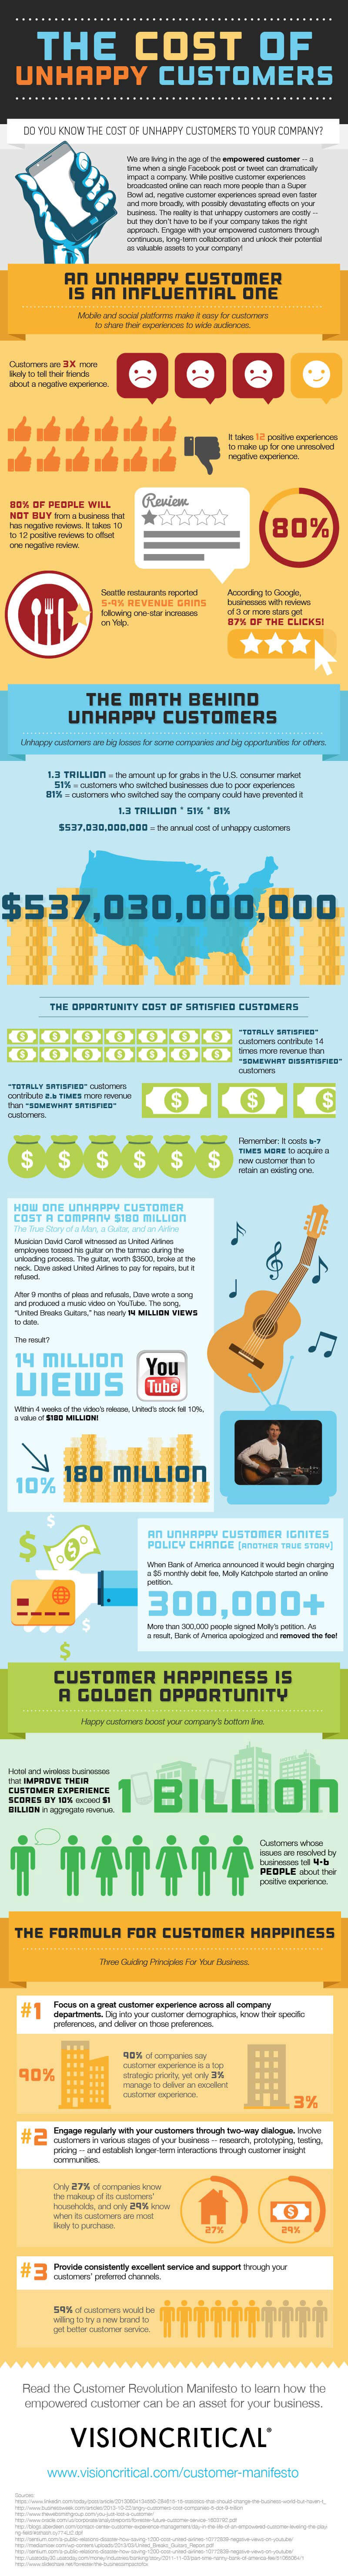 1402341204-businesses-cant-afford-upset-customers-infographic